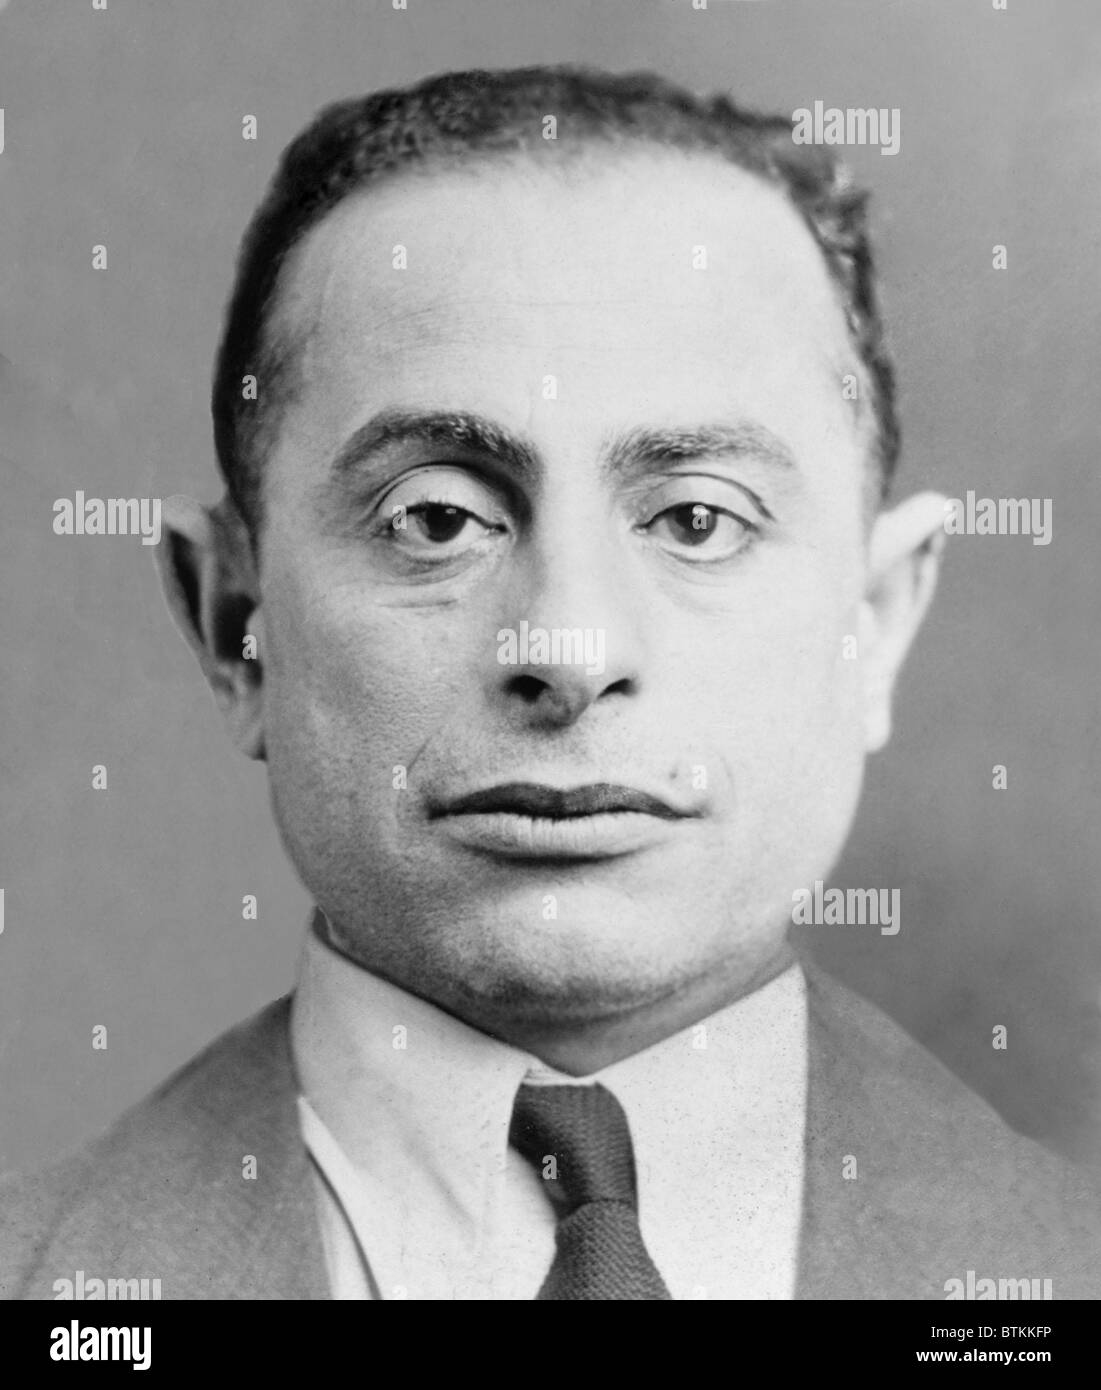 Louis Amburg (1887-1935) was a New York labor racketeer during the 1920s and 1930s. He worked with his brother Joseph, - Stock Image